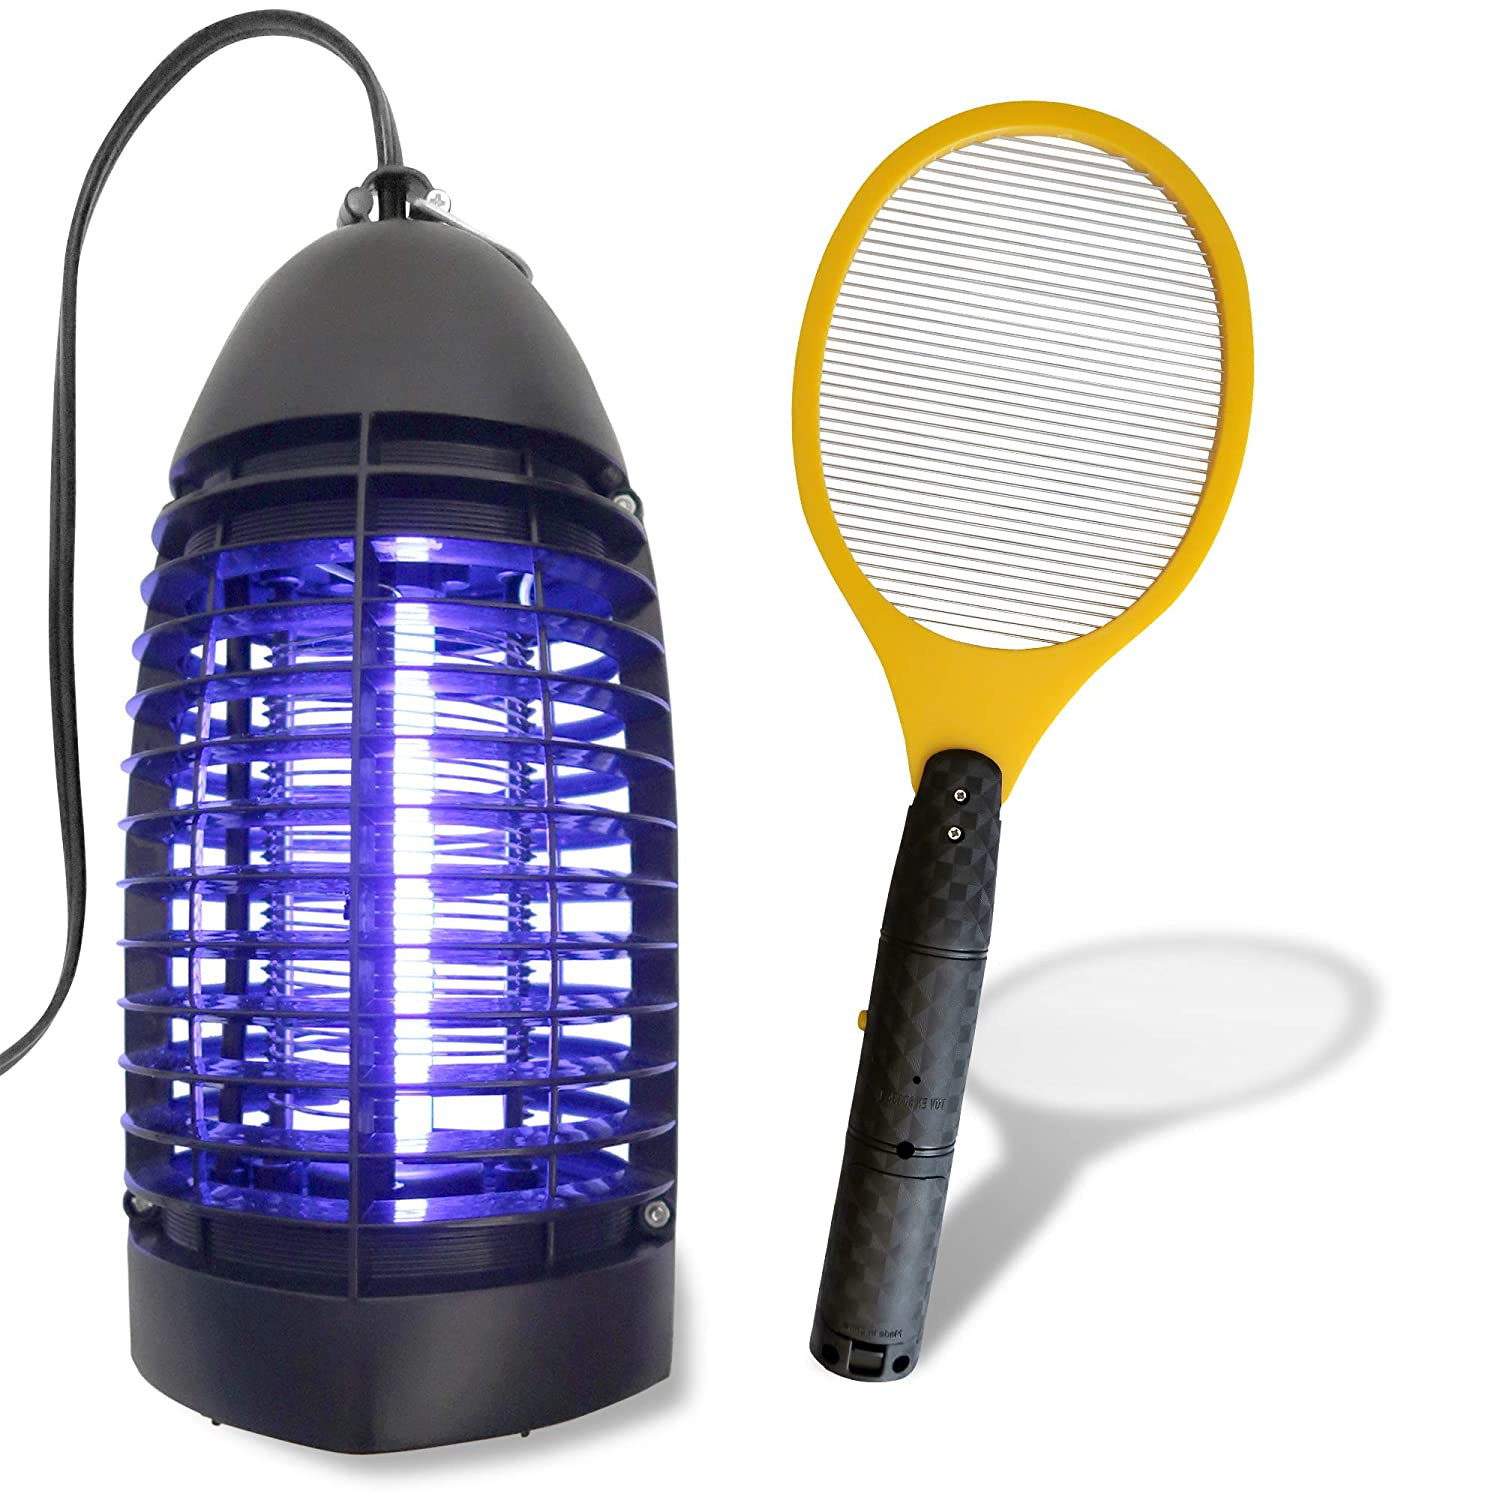 SBL Home Bug Zapper Indoor Lamp, Trap, Catcher Bundled with Electric Mosquito Swatter, Racket, Racquet